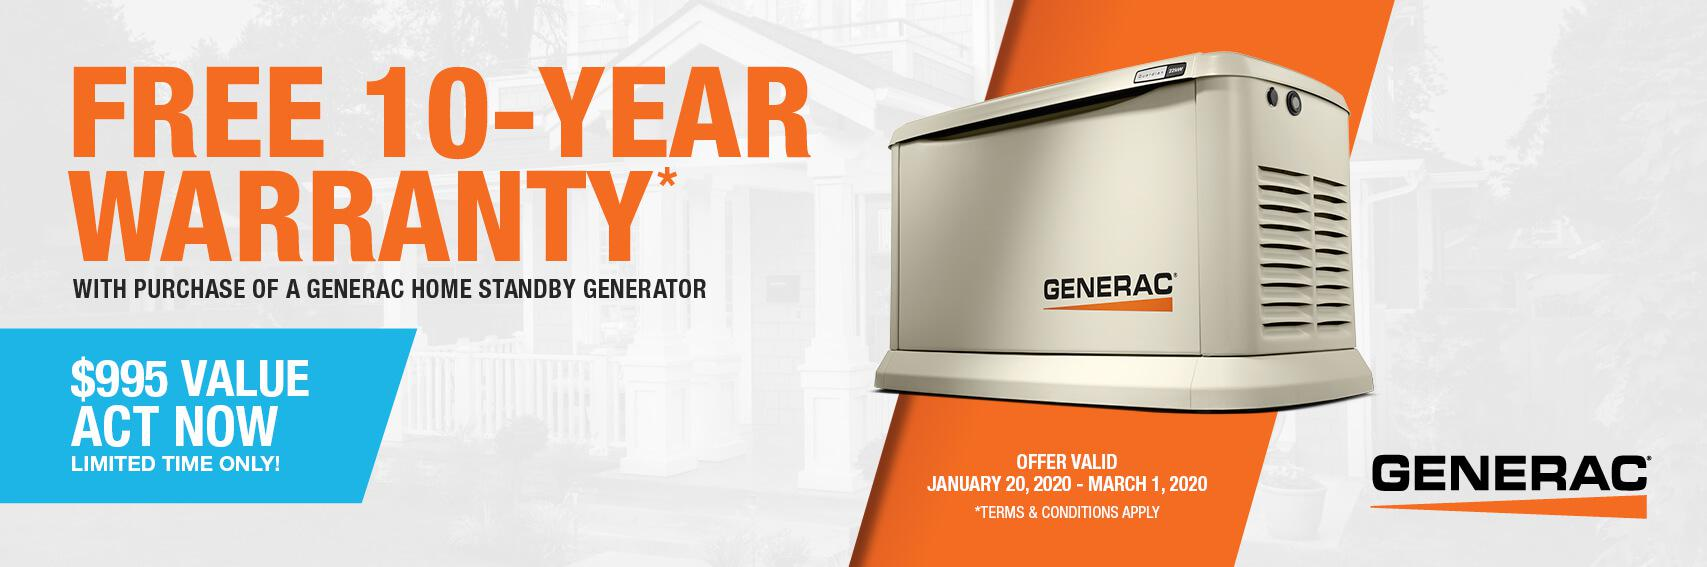 Homestandby Generator Deal | Warranty Offer | Generac Dealer | Lakewood, NJ